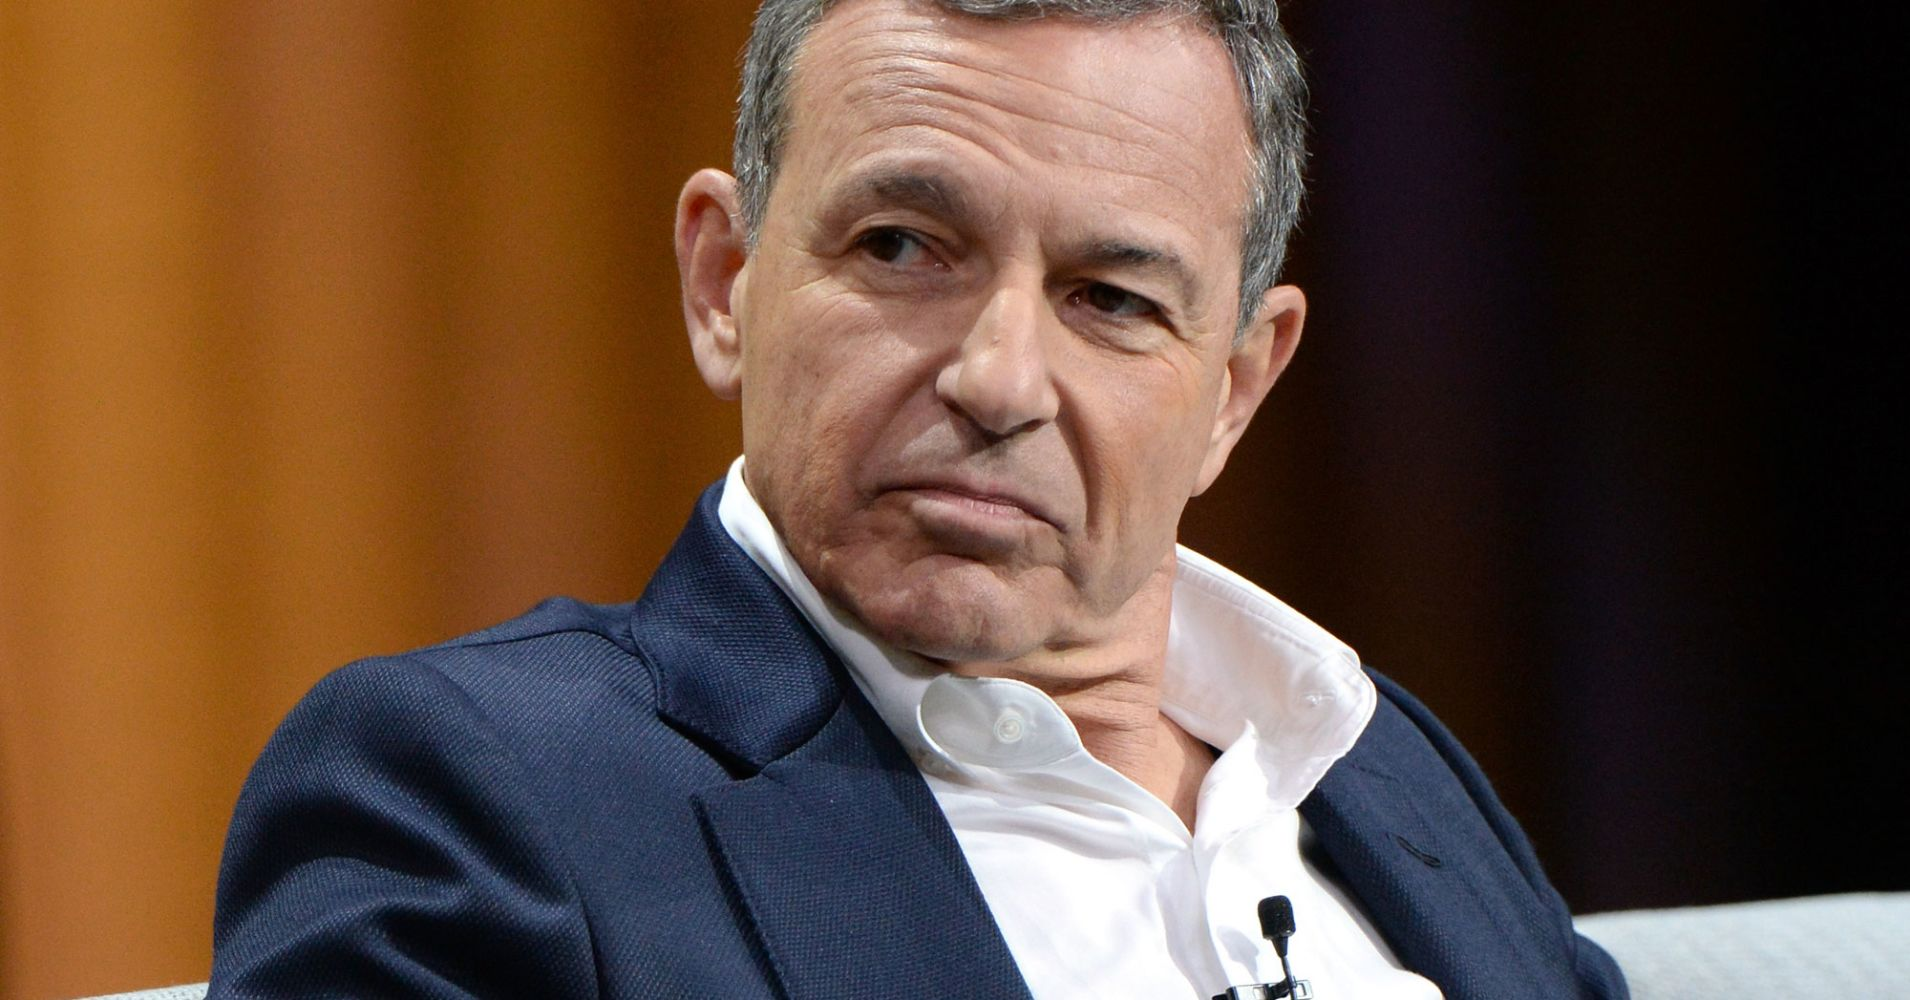 Disney's Bob Iger on how the company will be successful in streaming